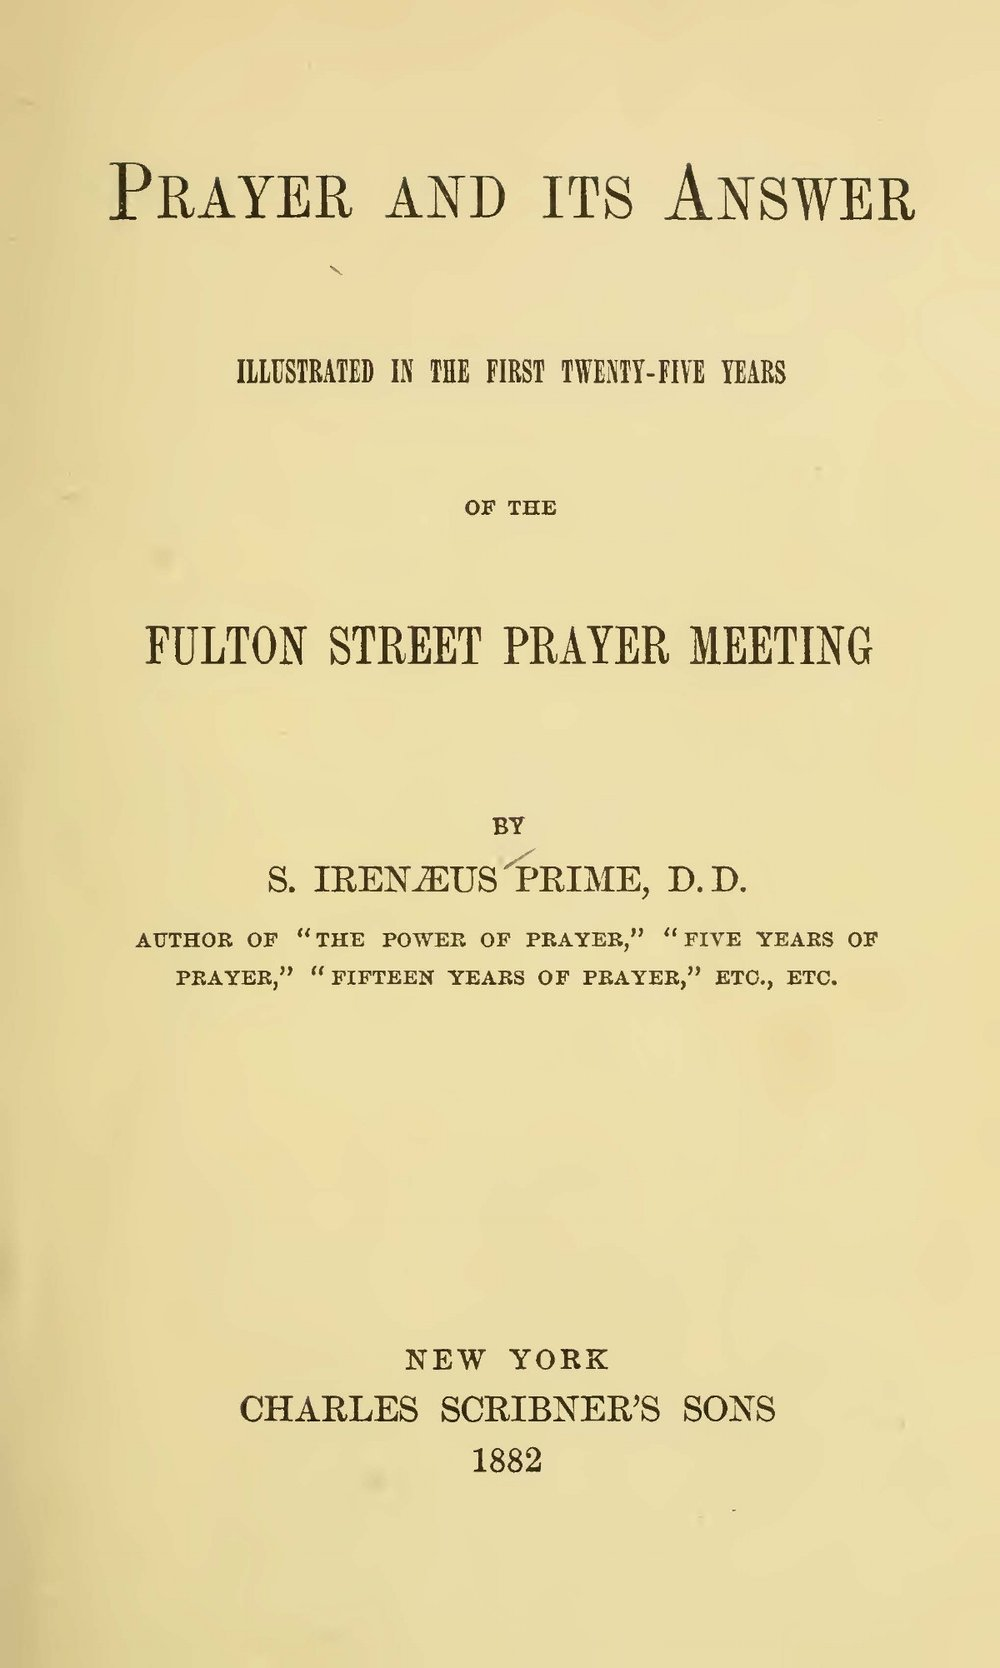 Prime, Samuel Irenaeus, Prayer and Its Answer Title Page.jpg